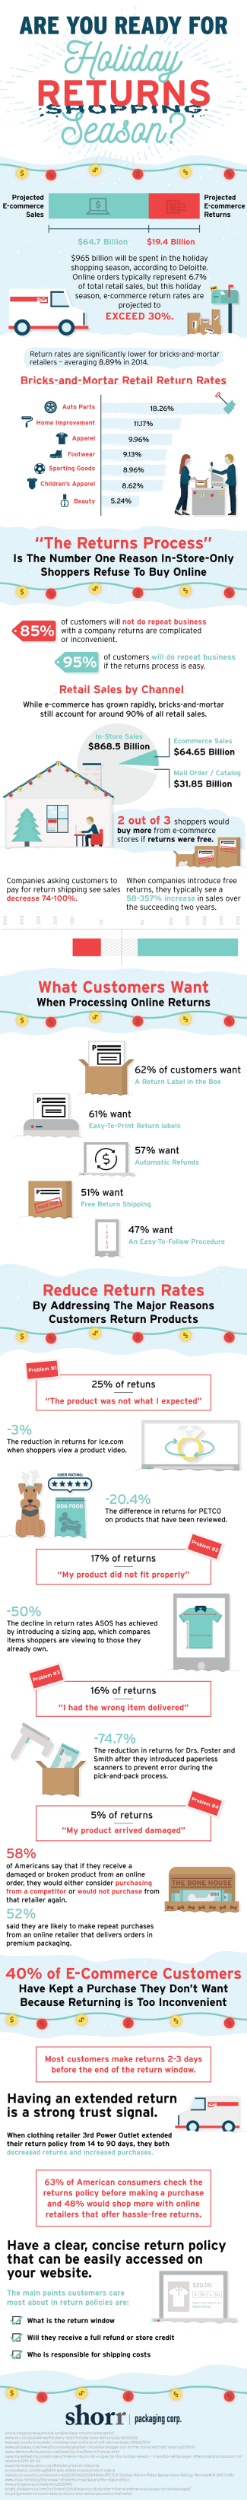 http://www.getelastic.com/4-secrets-to-reduce-holiday-returns-and-improve-customer-service-infographic/